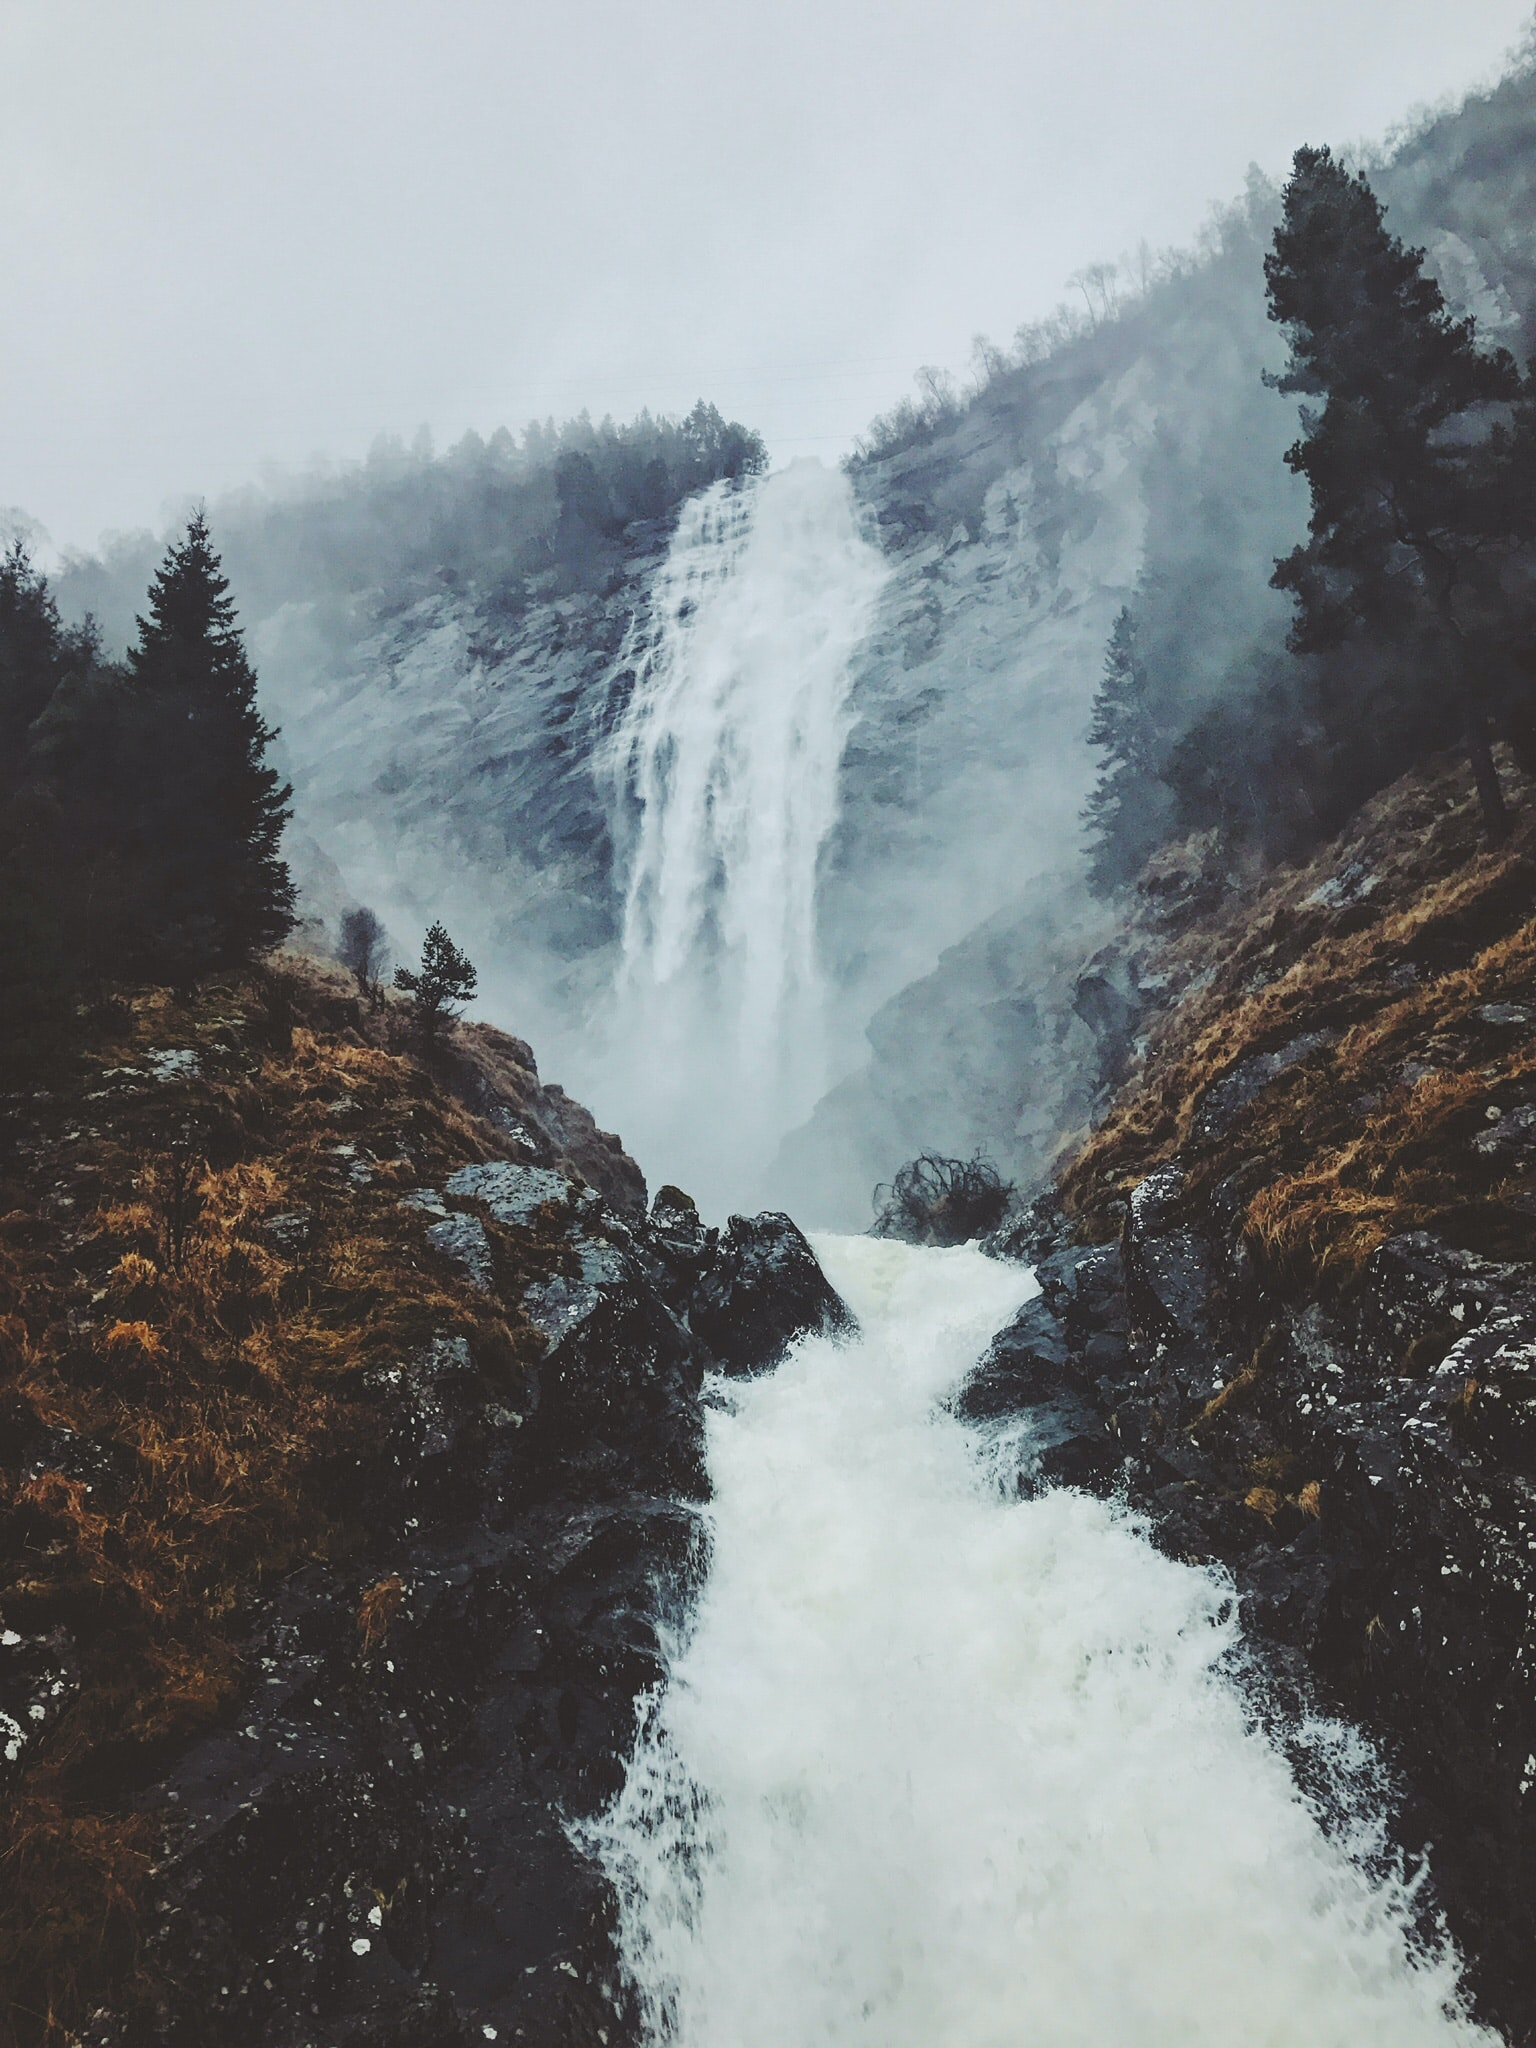 foggy mountain with falls